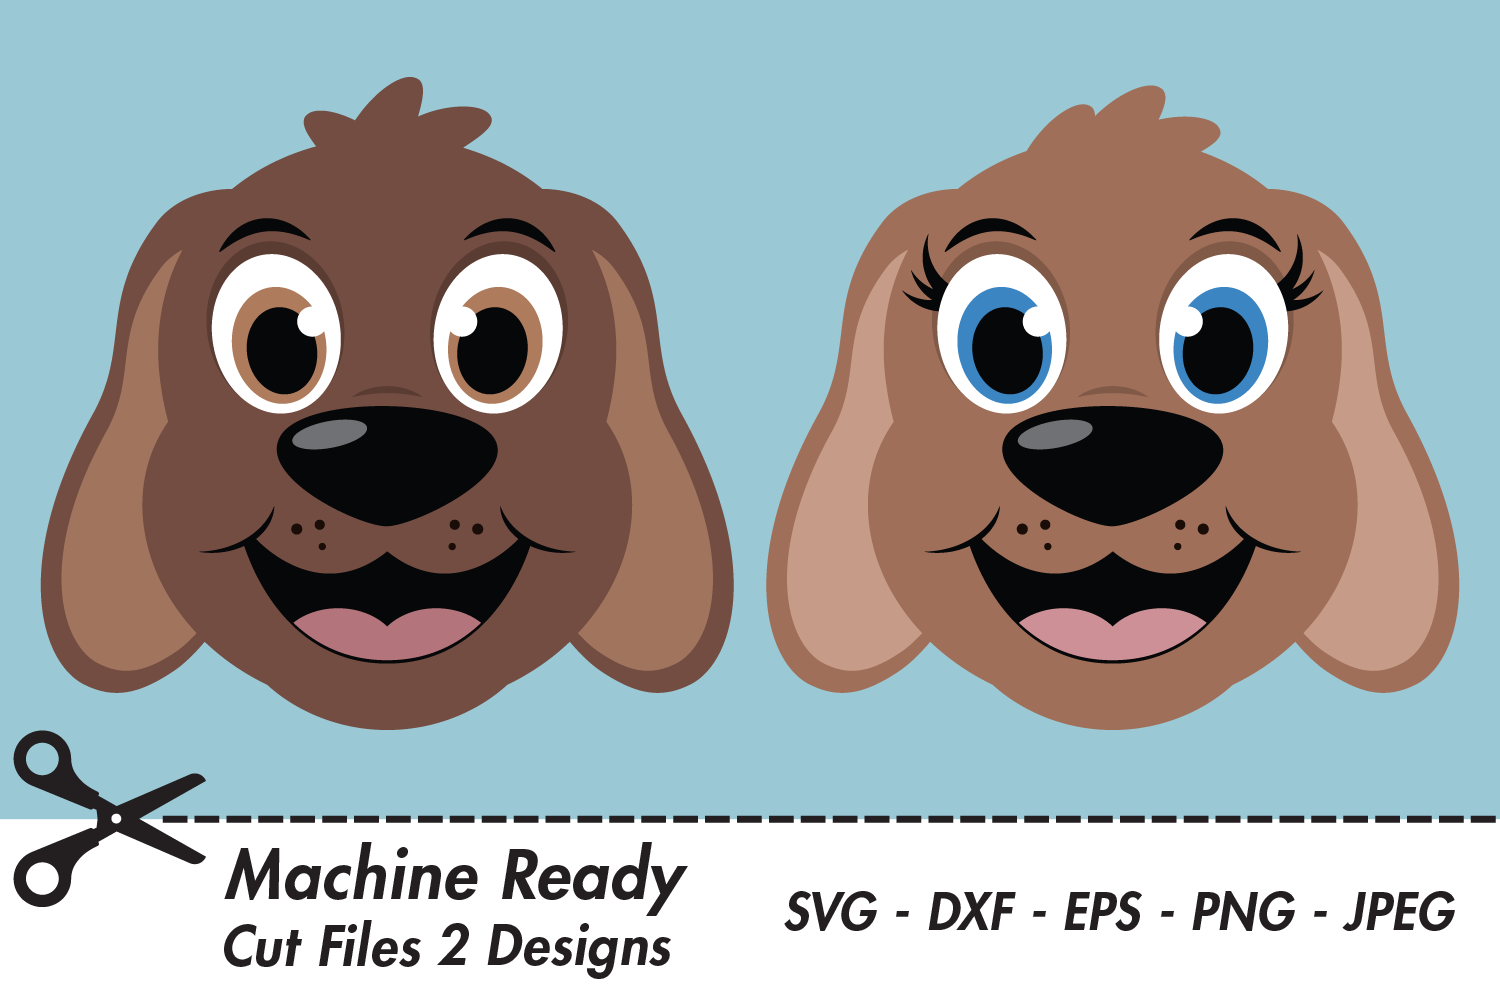 Download Free Cute Dog Faces Graphic By Captaincreative Creative Fabrica for Cricut Explore, Silhouette and other cutting machines.